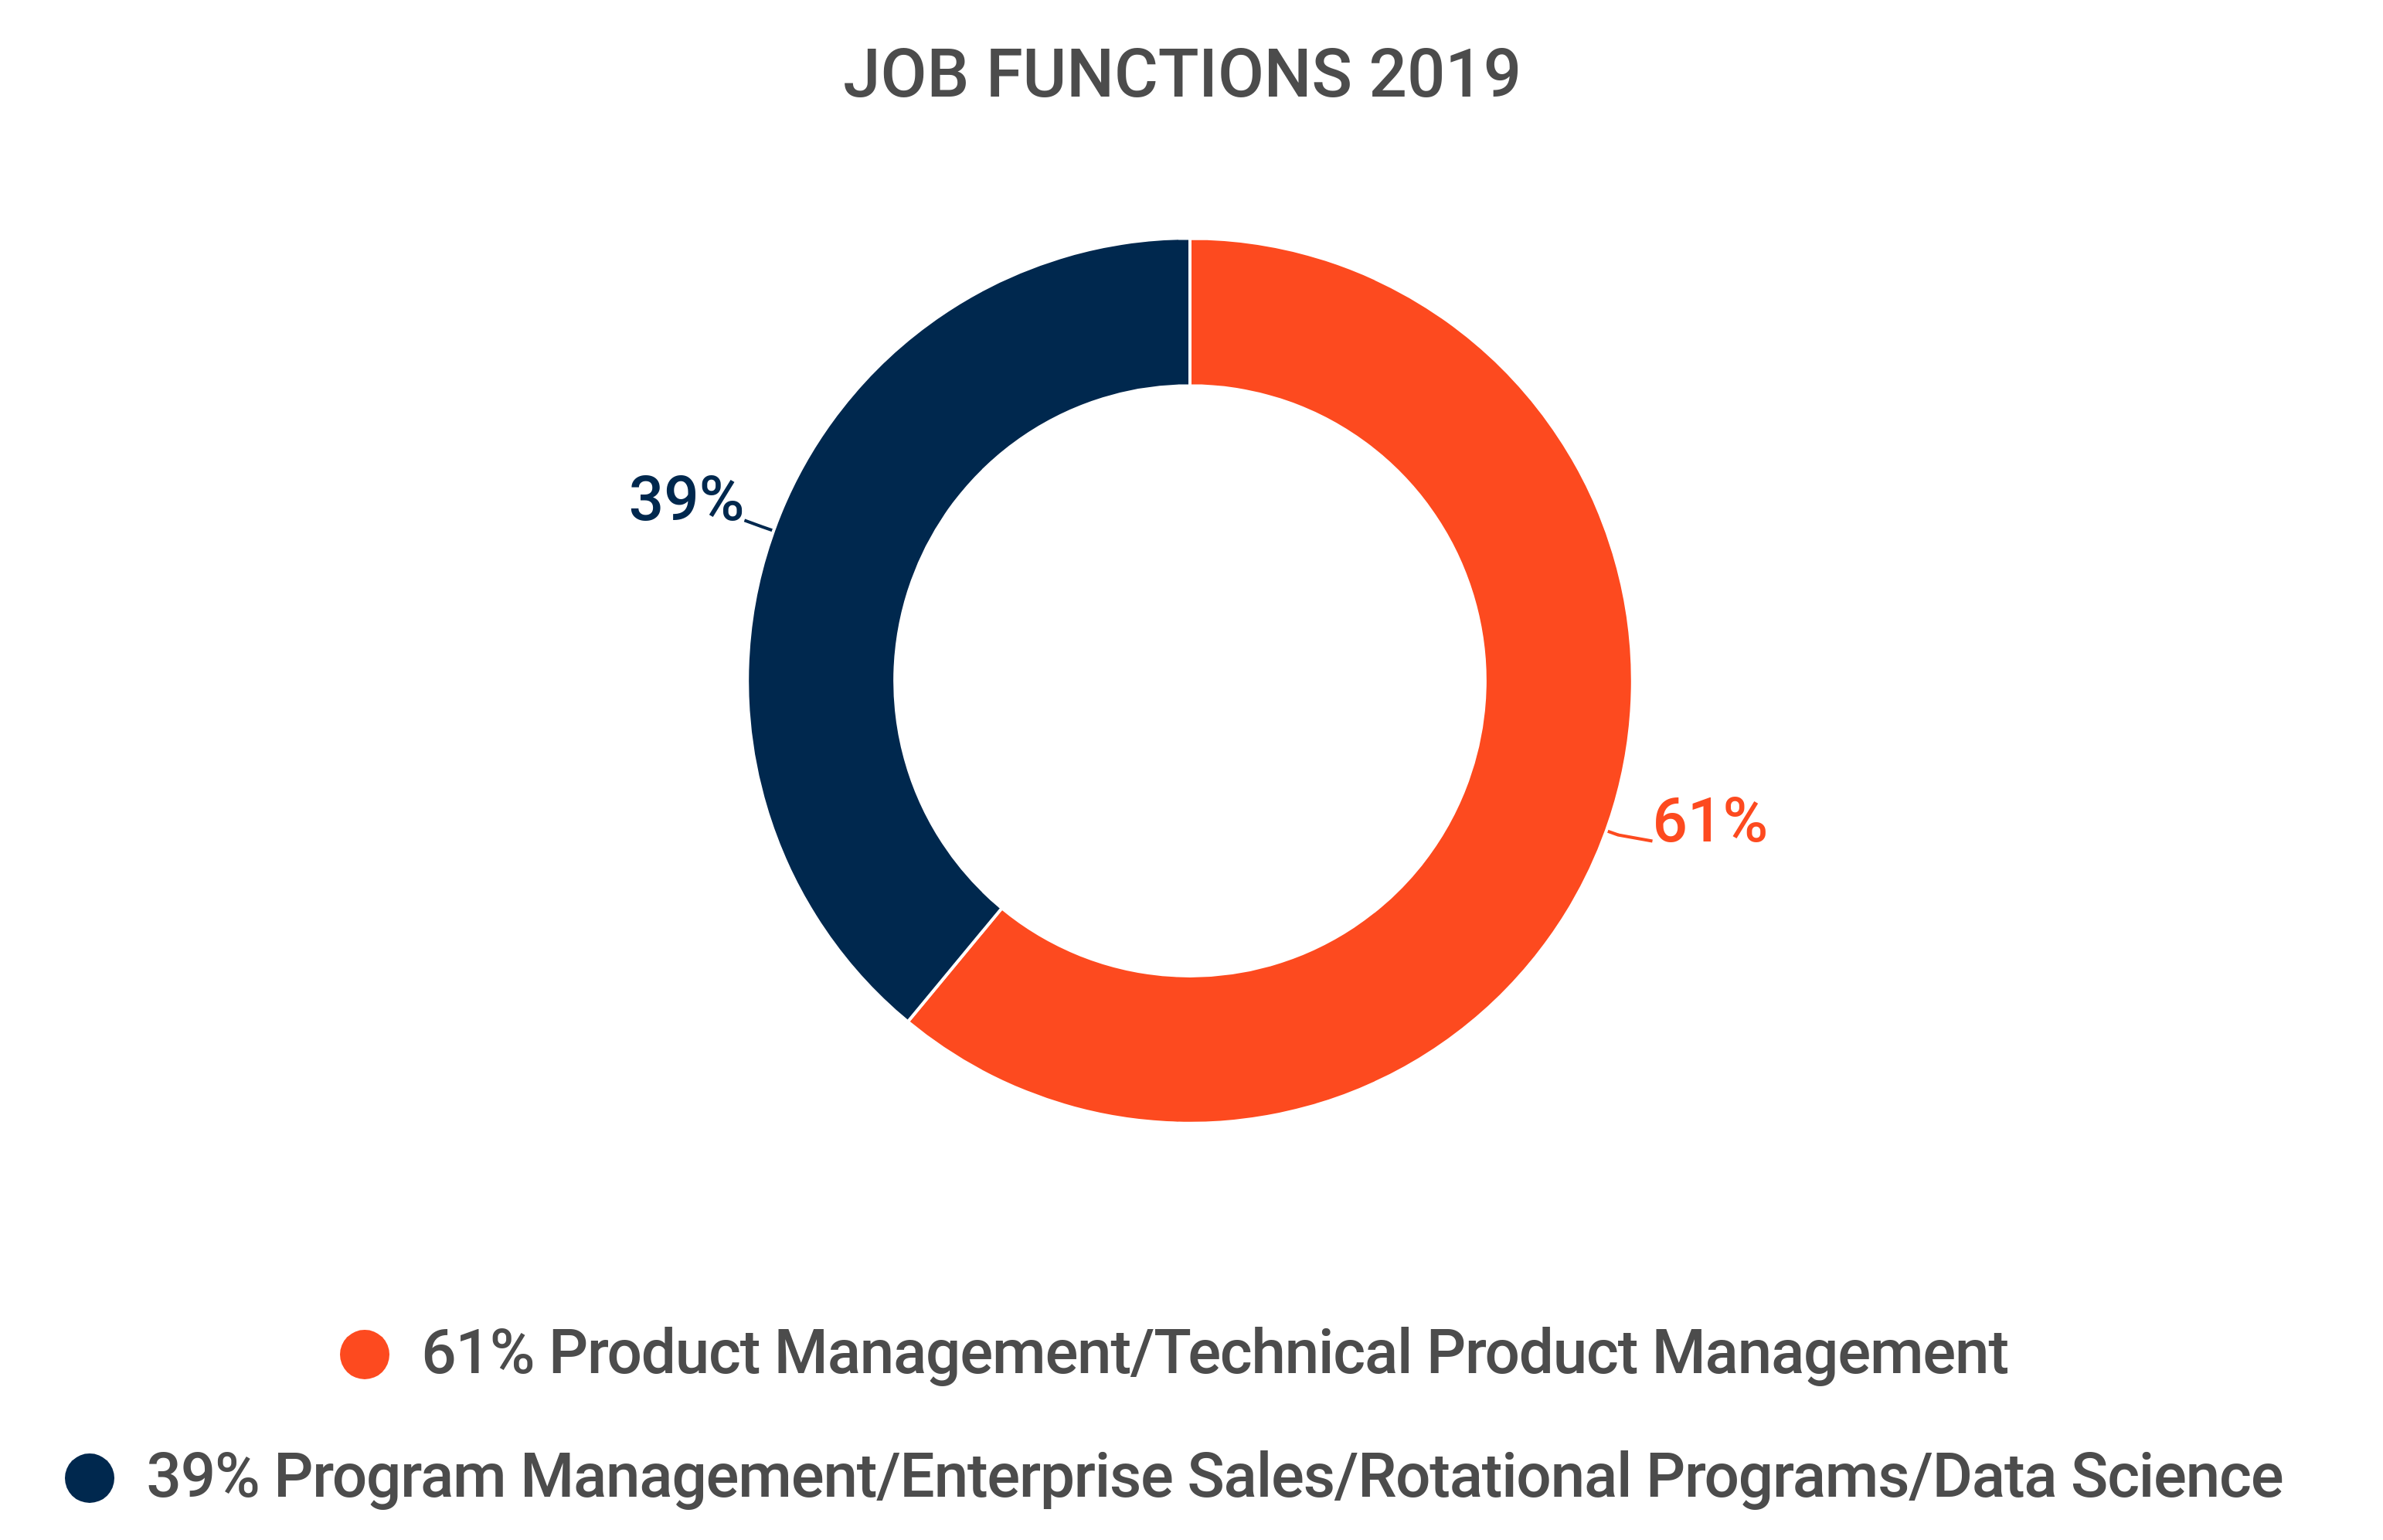 Circle-chart; Job Functions 2019: 61% Product Management/Technical Product Management and 39% Program Management/Enterprise Sales/Rotational Programs/Data Science